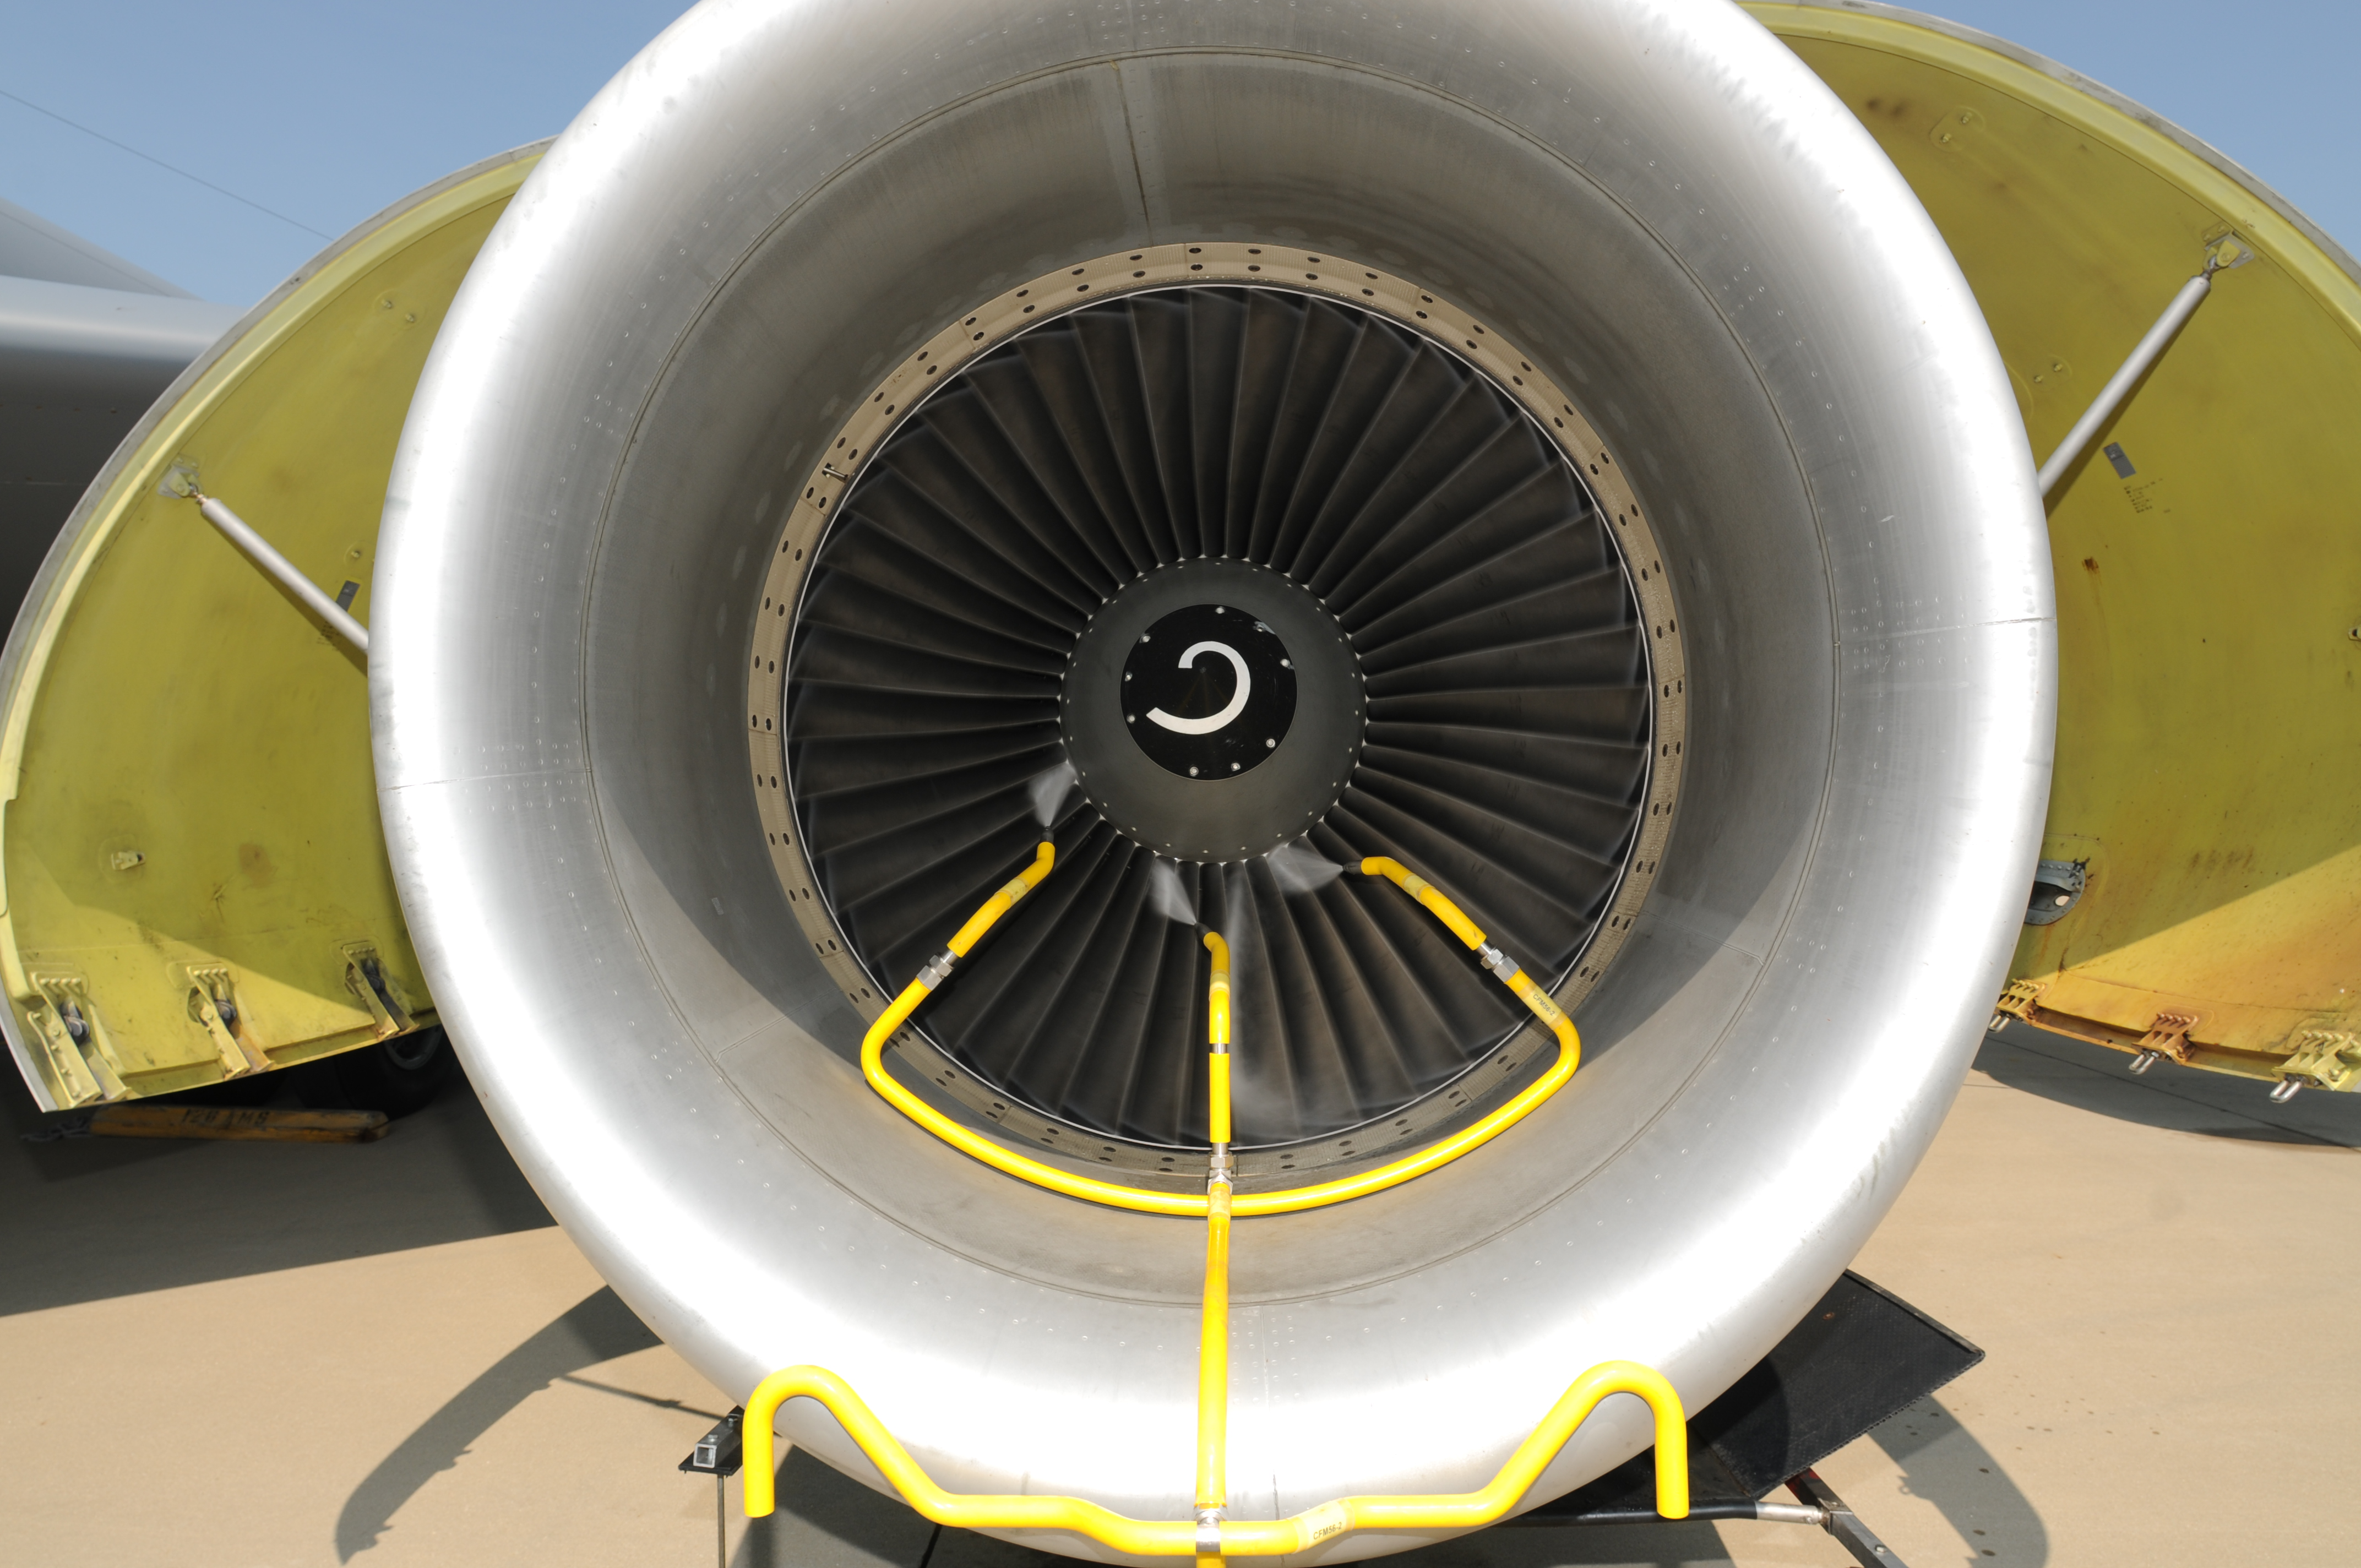 Kc 135 C 5 Engine Water Wash Test Could Reveal Fuel